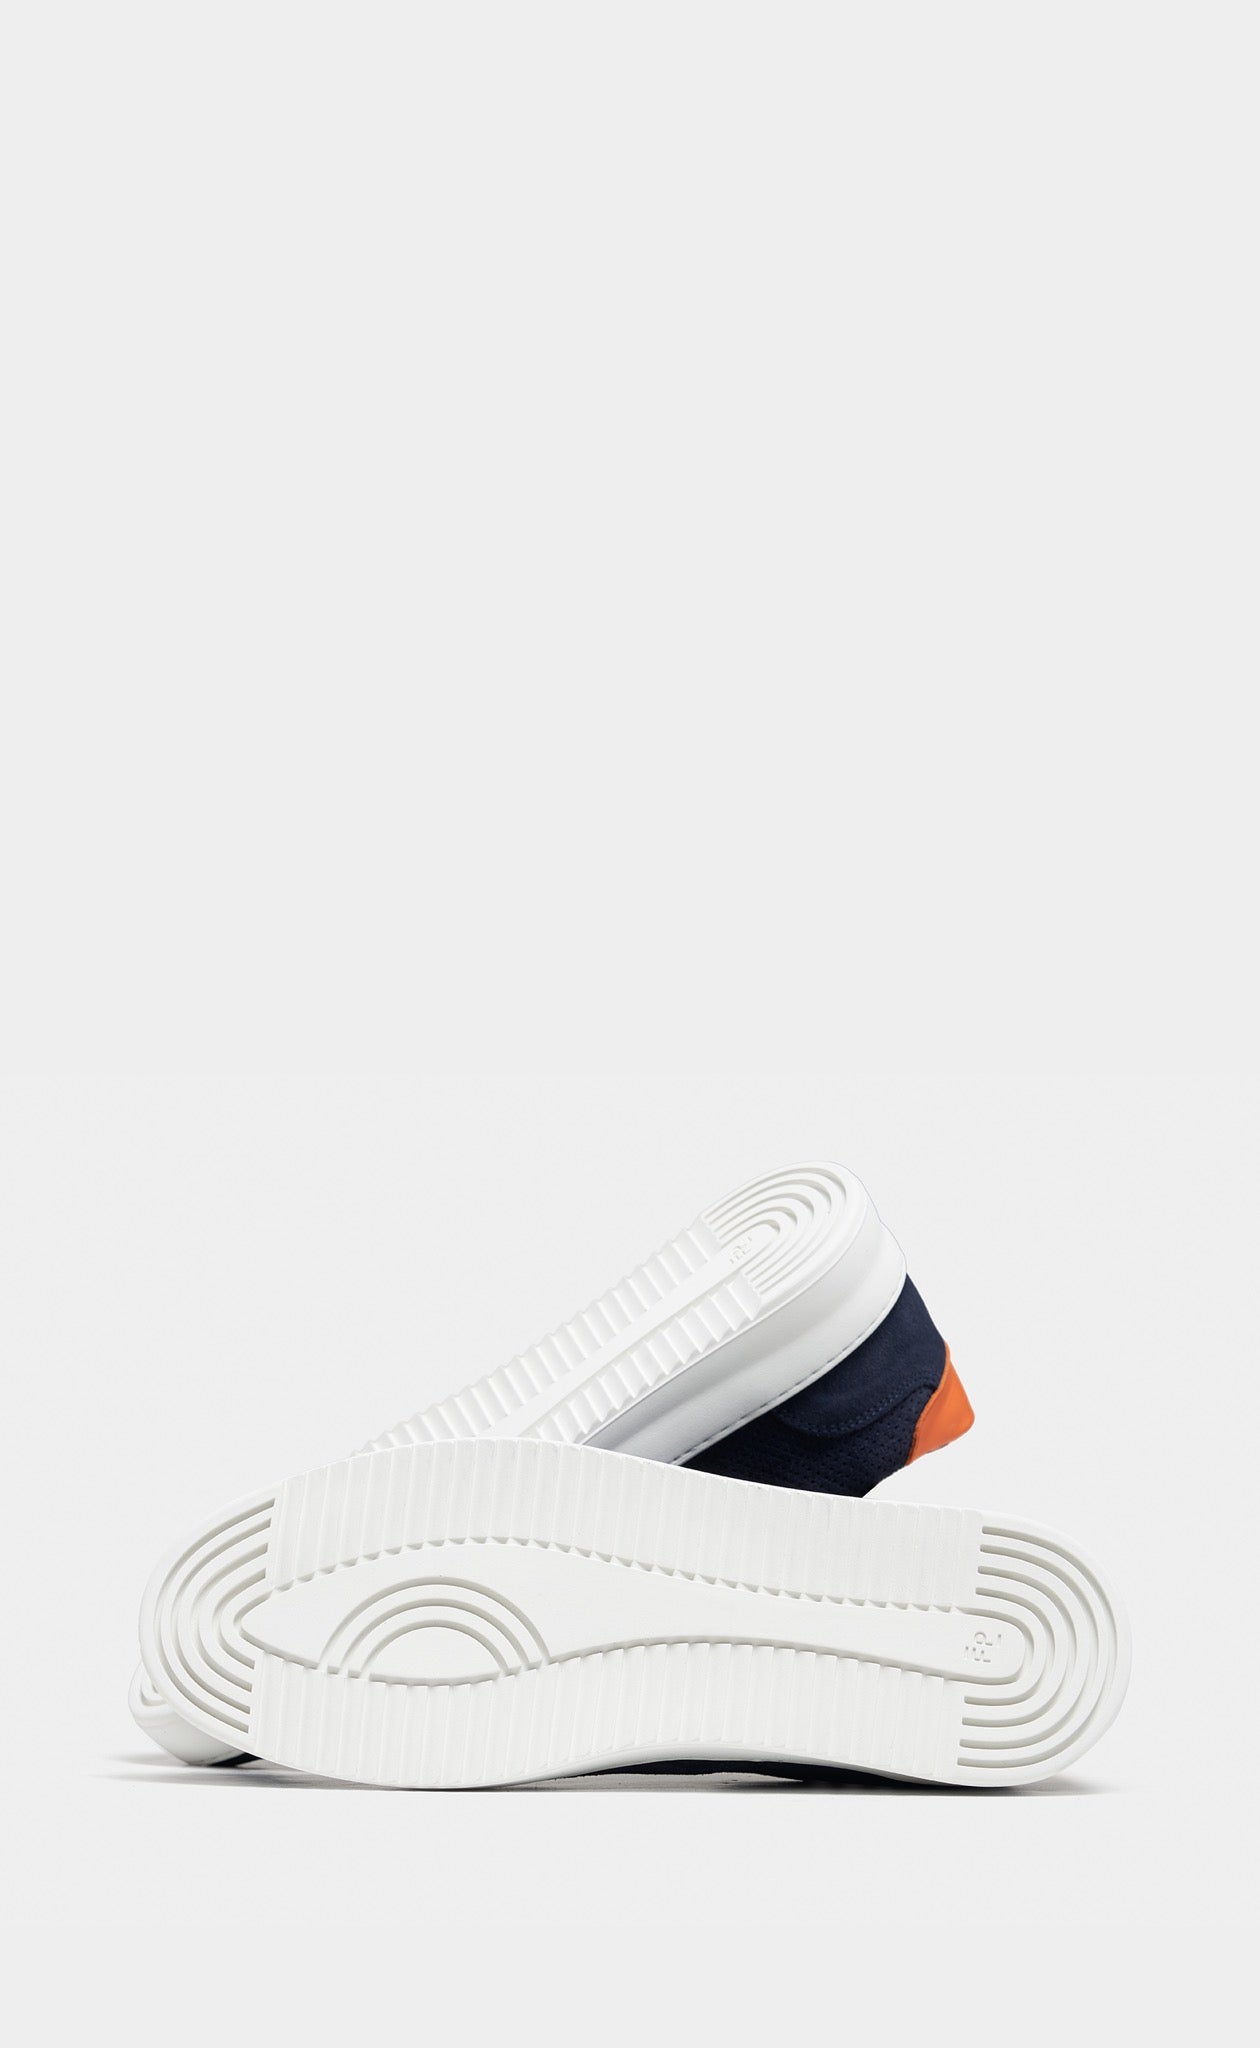 Low Mondo Ripple Suede Perforated Navy